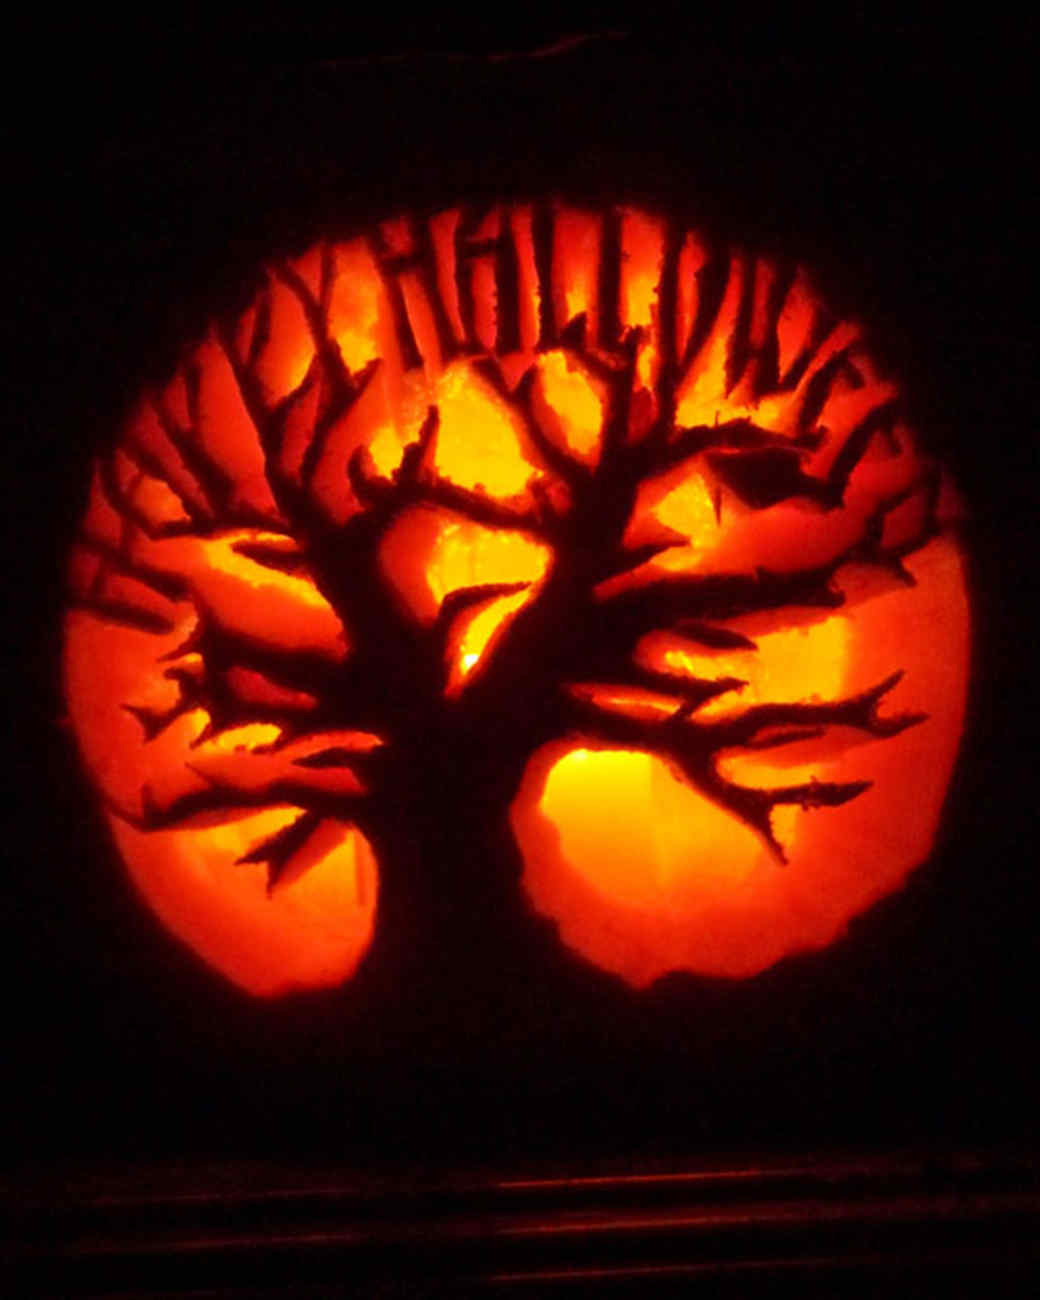 scary pumpkin carving tree low budget interior design rh ihaibaaooa elitescloset store